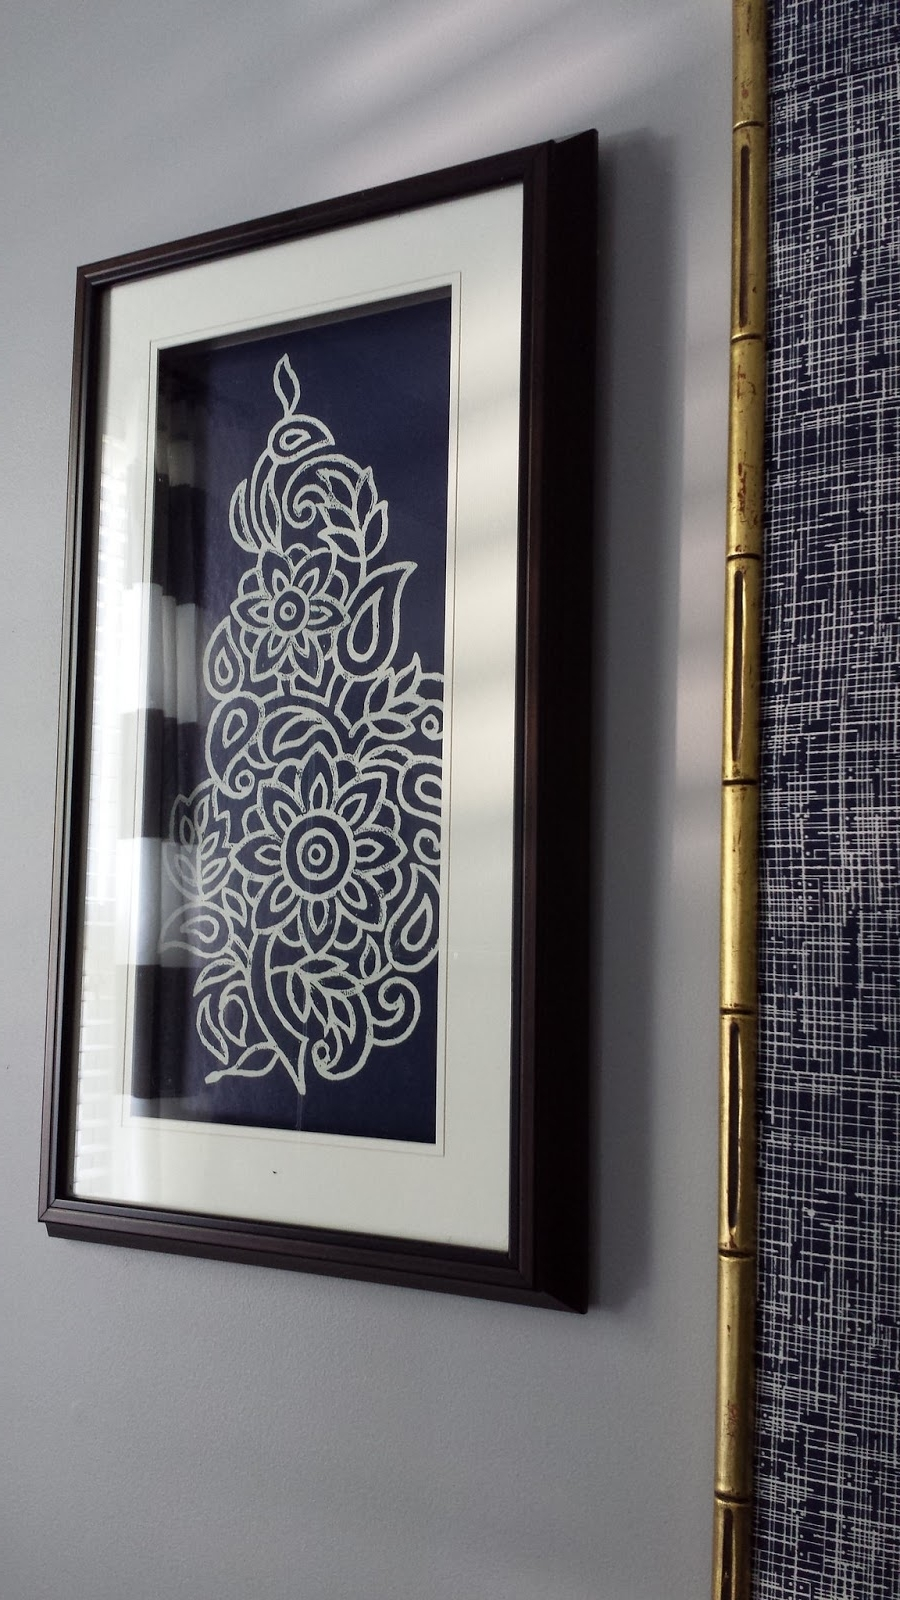 Framed Fabric Wall Art Within Recent Focal Point Styling: Diy Indigo Wall Art With Framed Fabric (View 8 of 15)